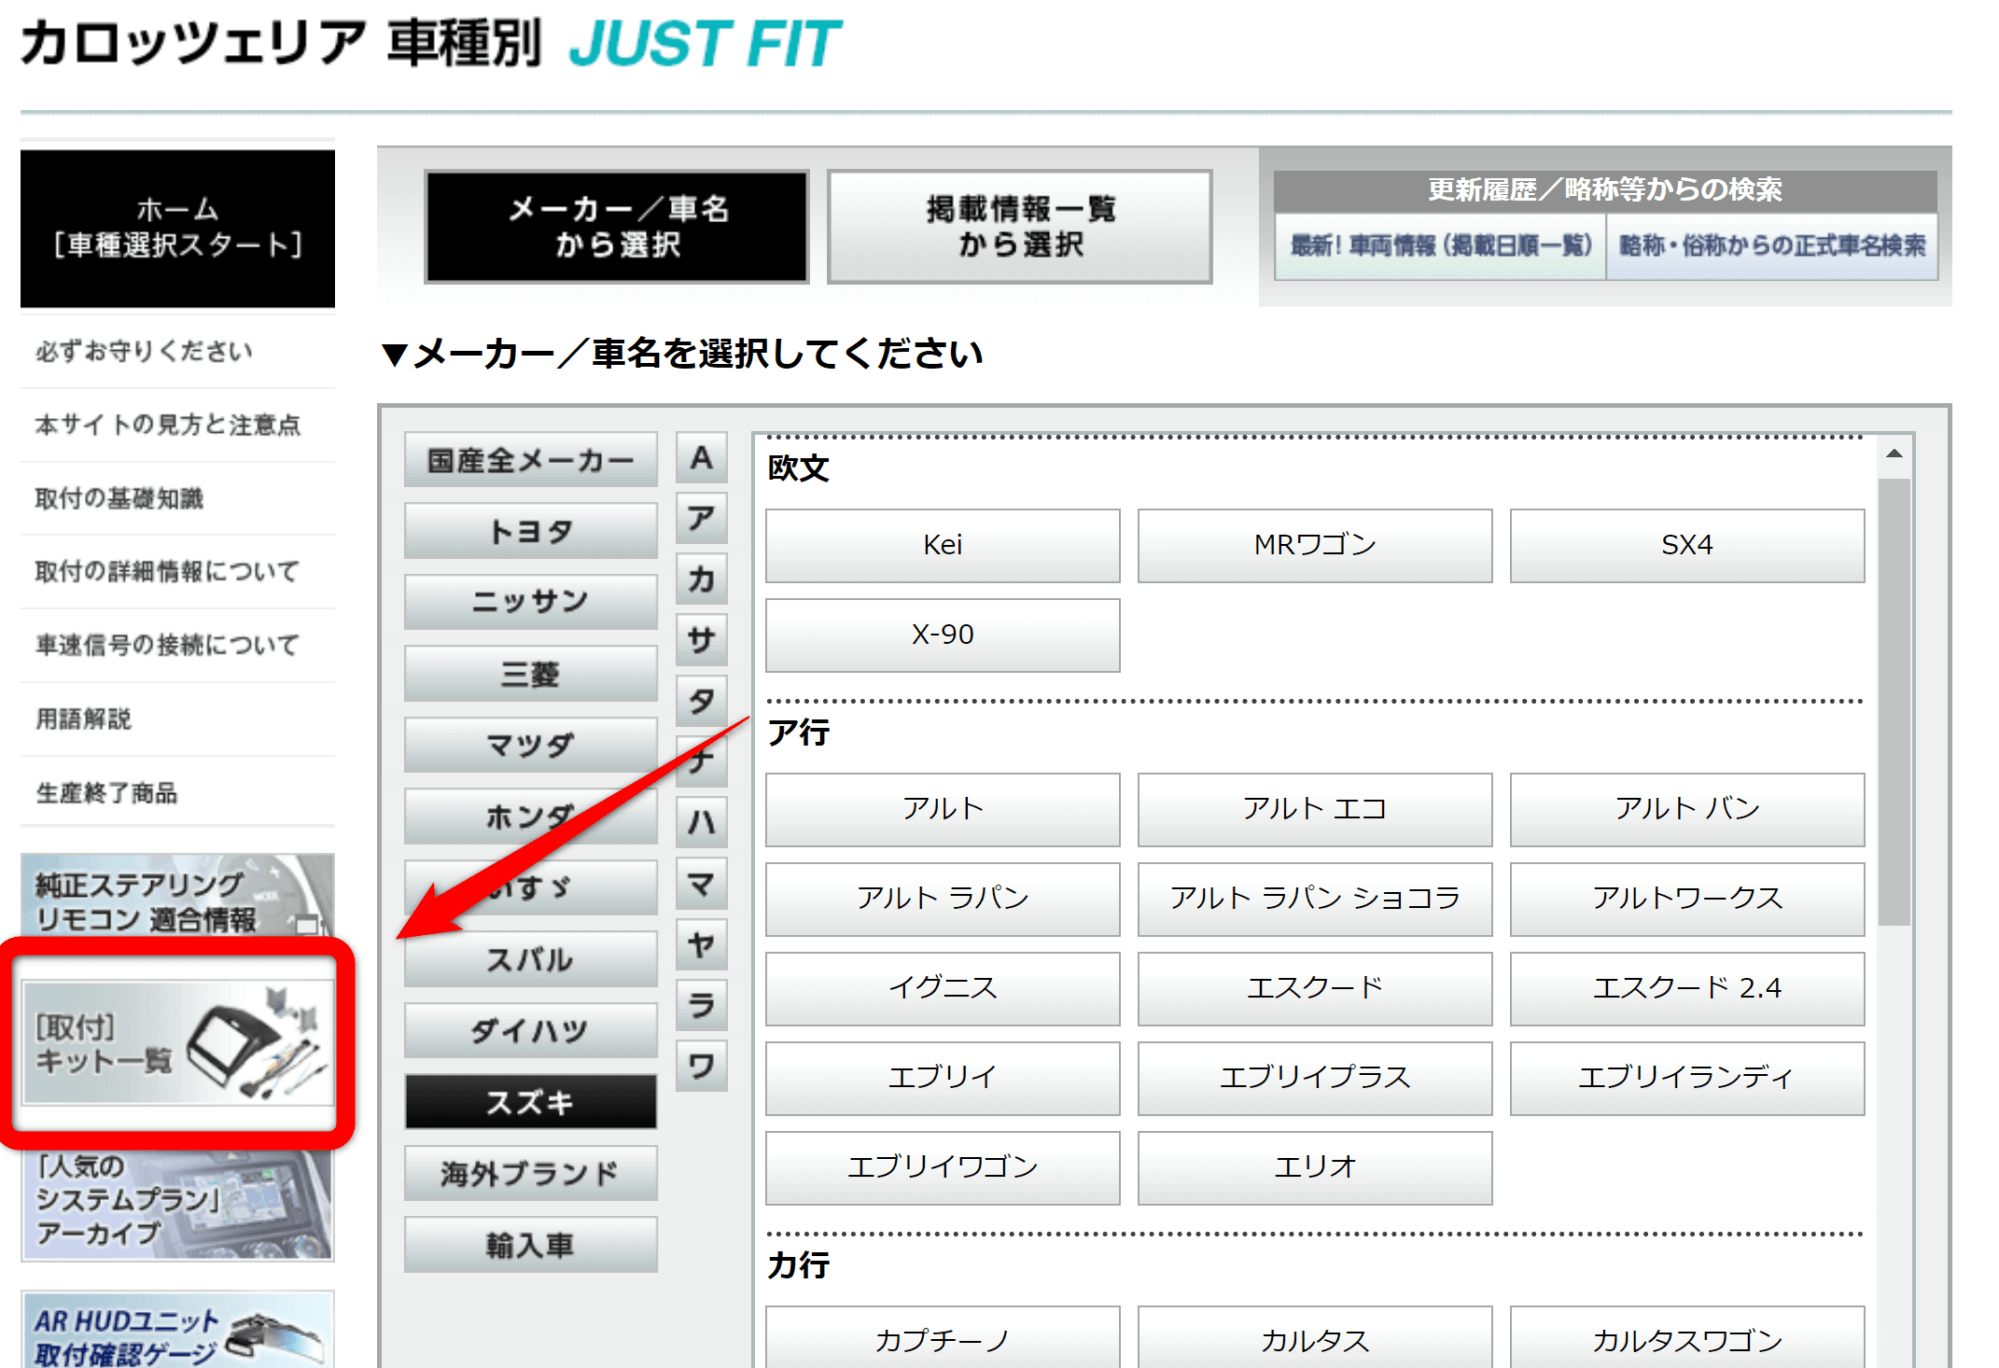 just-fit-fittng-kit-info